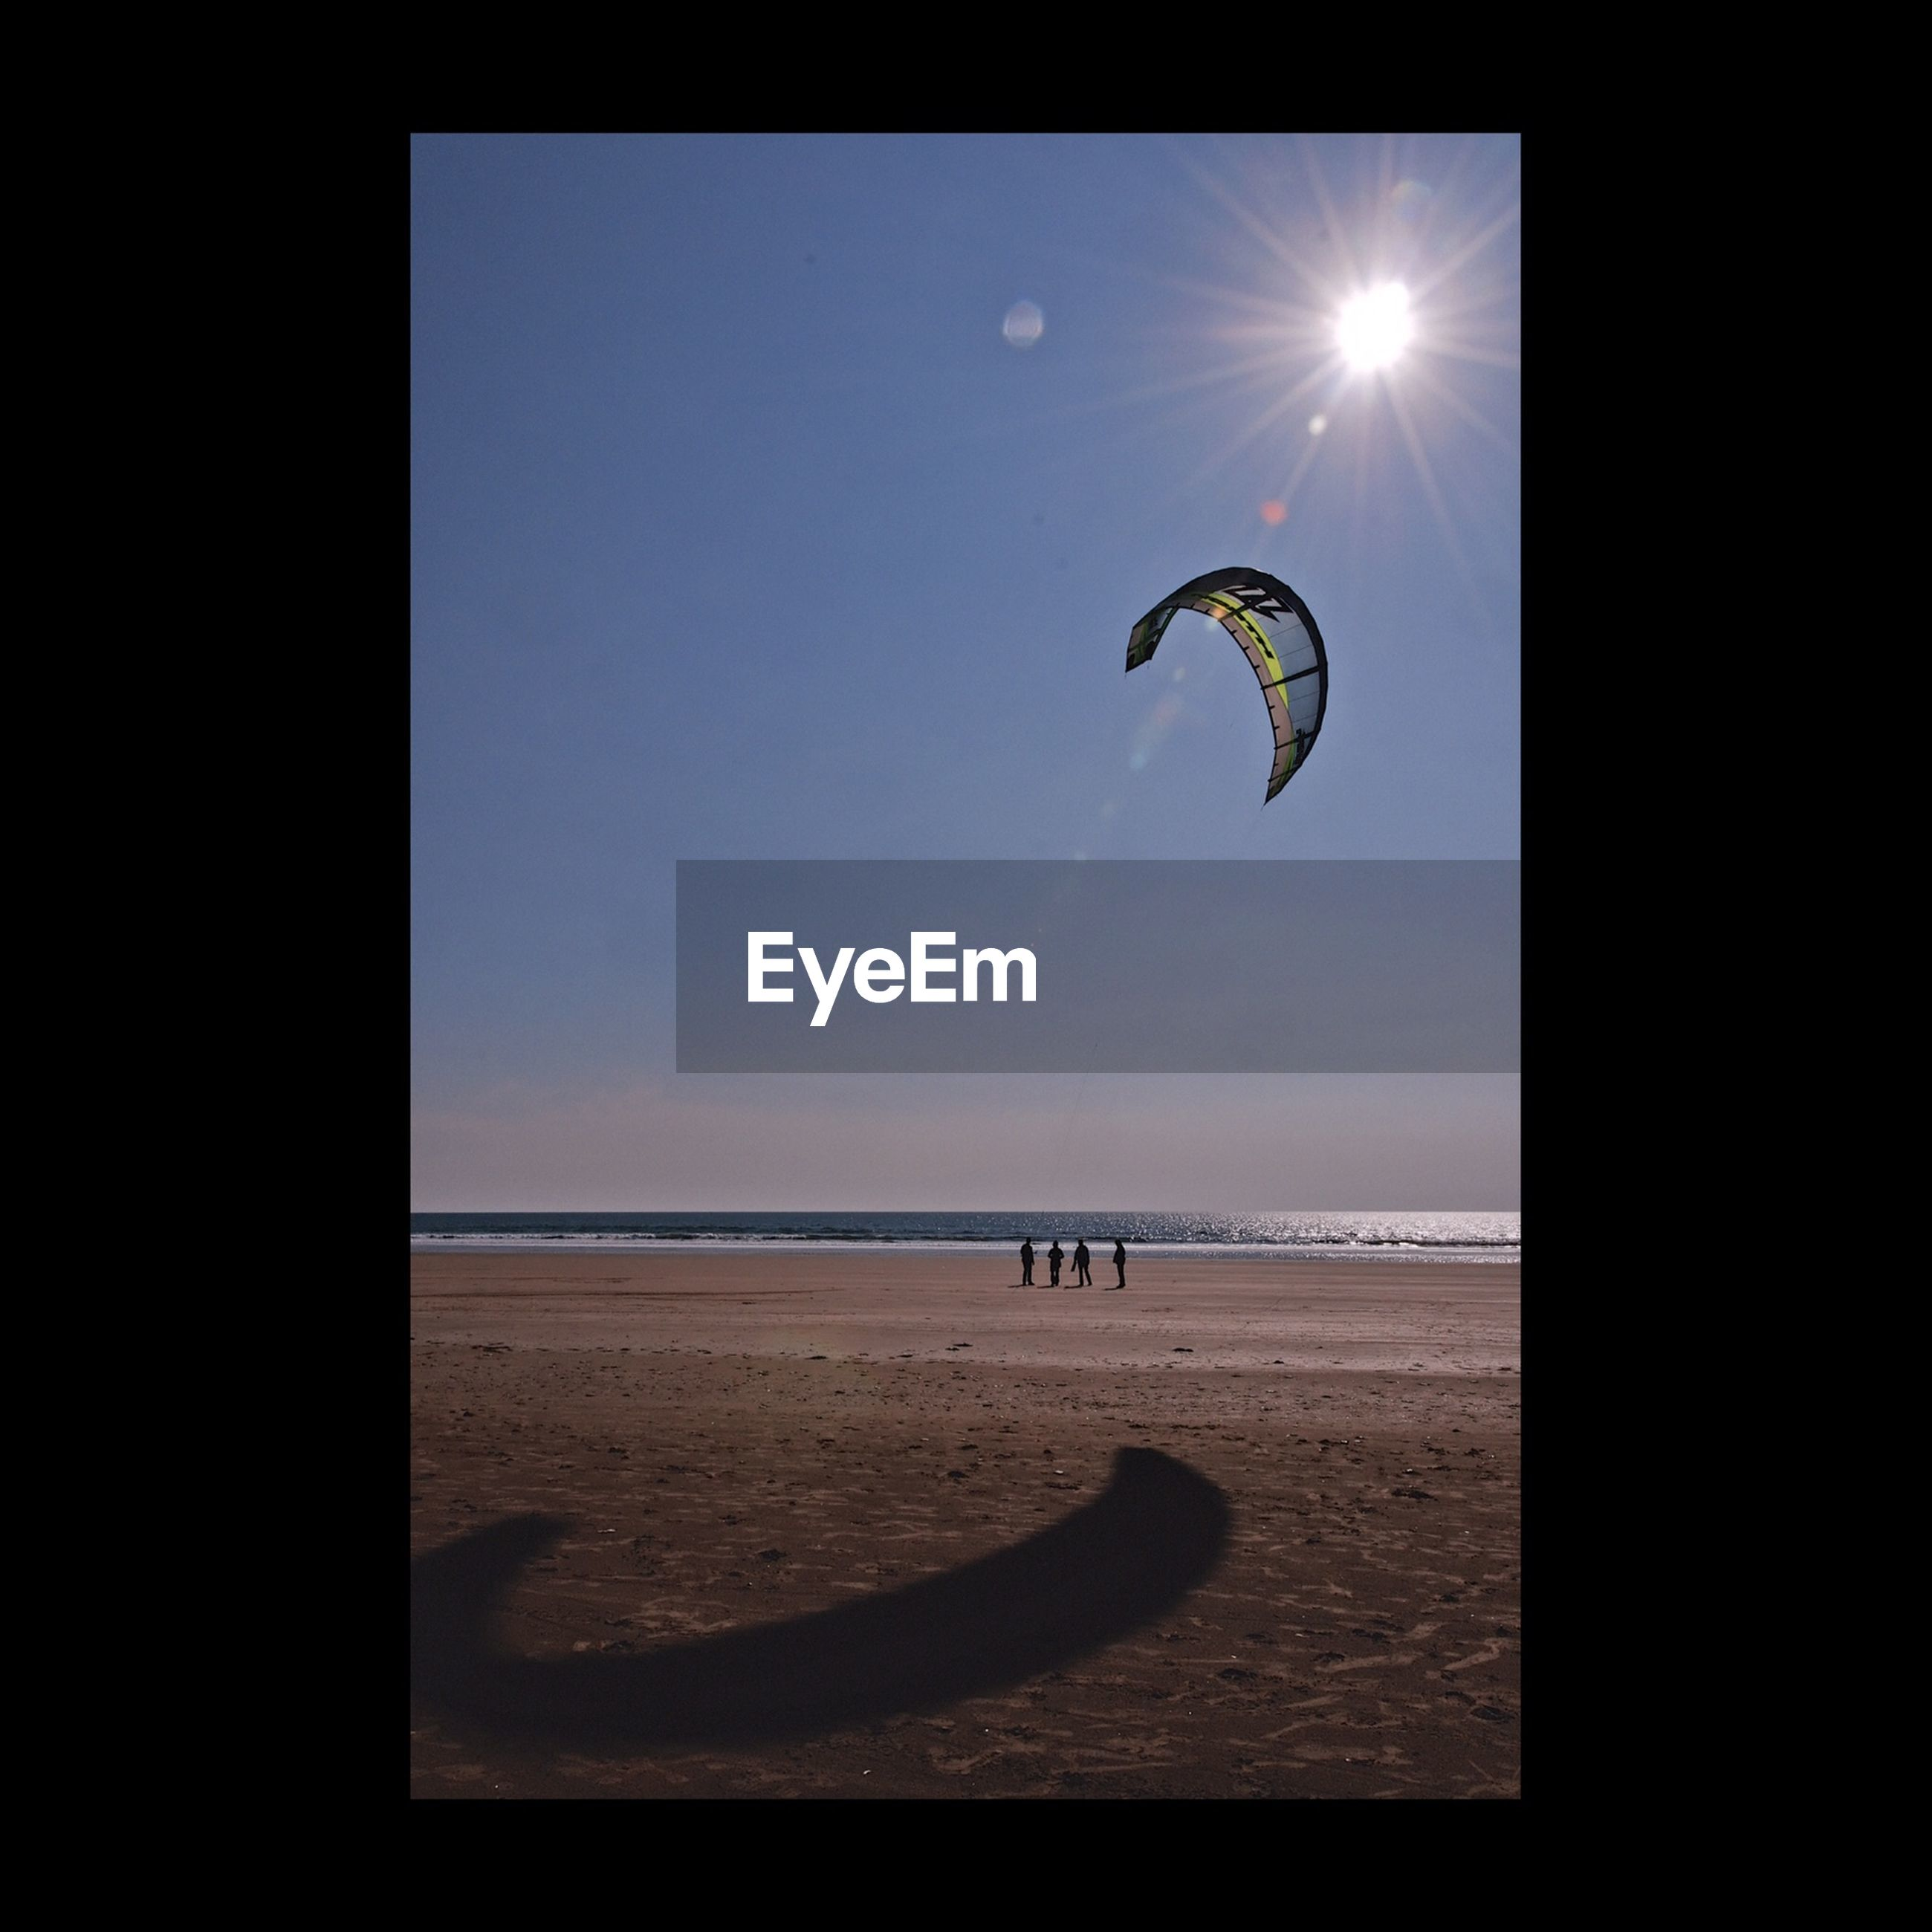 sea, beach, horizon over water, water, scenics, leisure activity, flying, mid-air, parachute, sky, tranquility, shore, sport, extreme sports, tranquil scene, beauty in nature, vacations, lifestyles, adventure